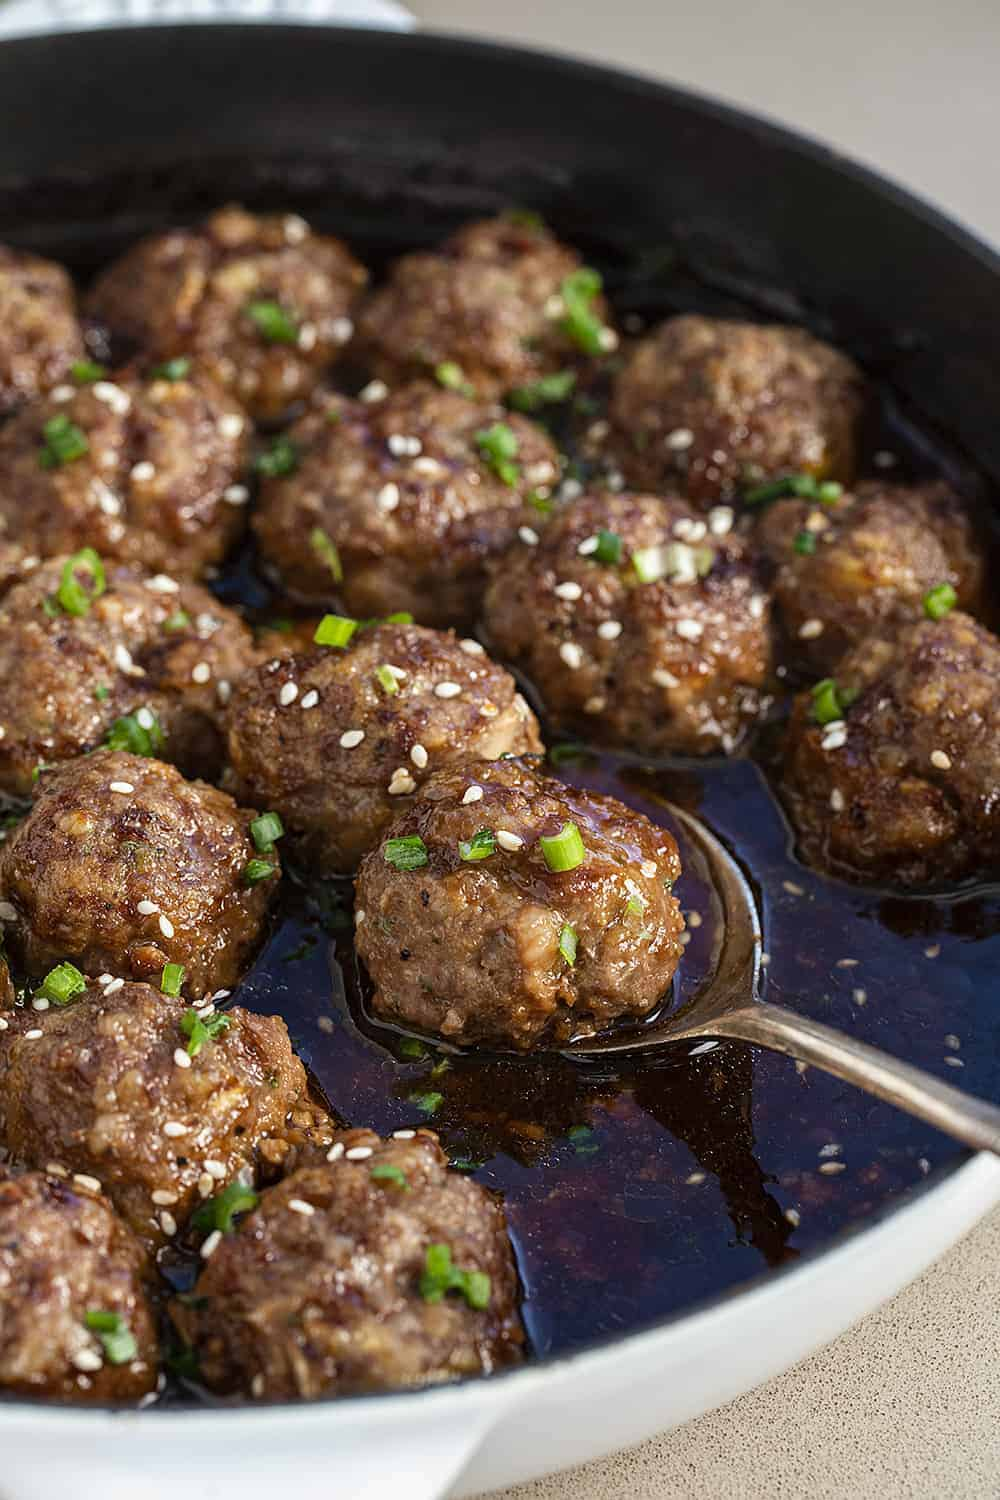 Teriyaki Meatball Recipe in a White Skillet with One on a Spoon